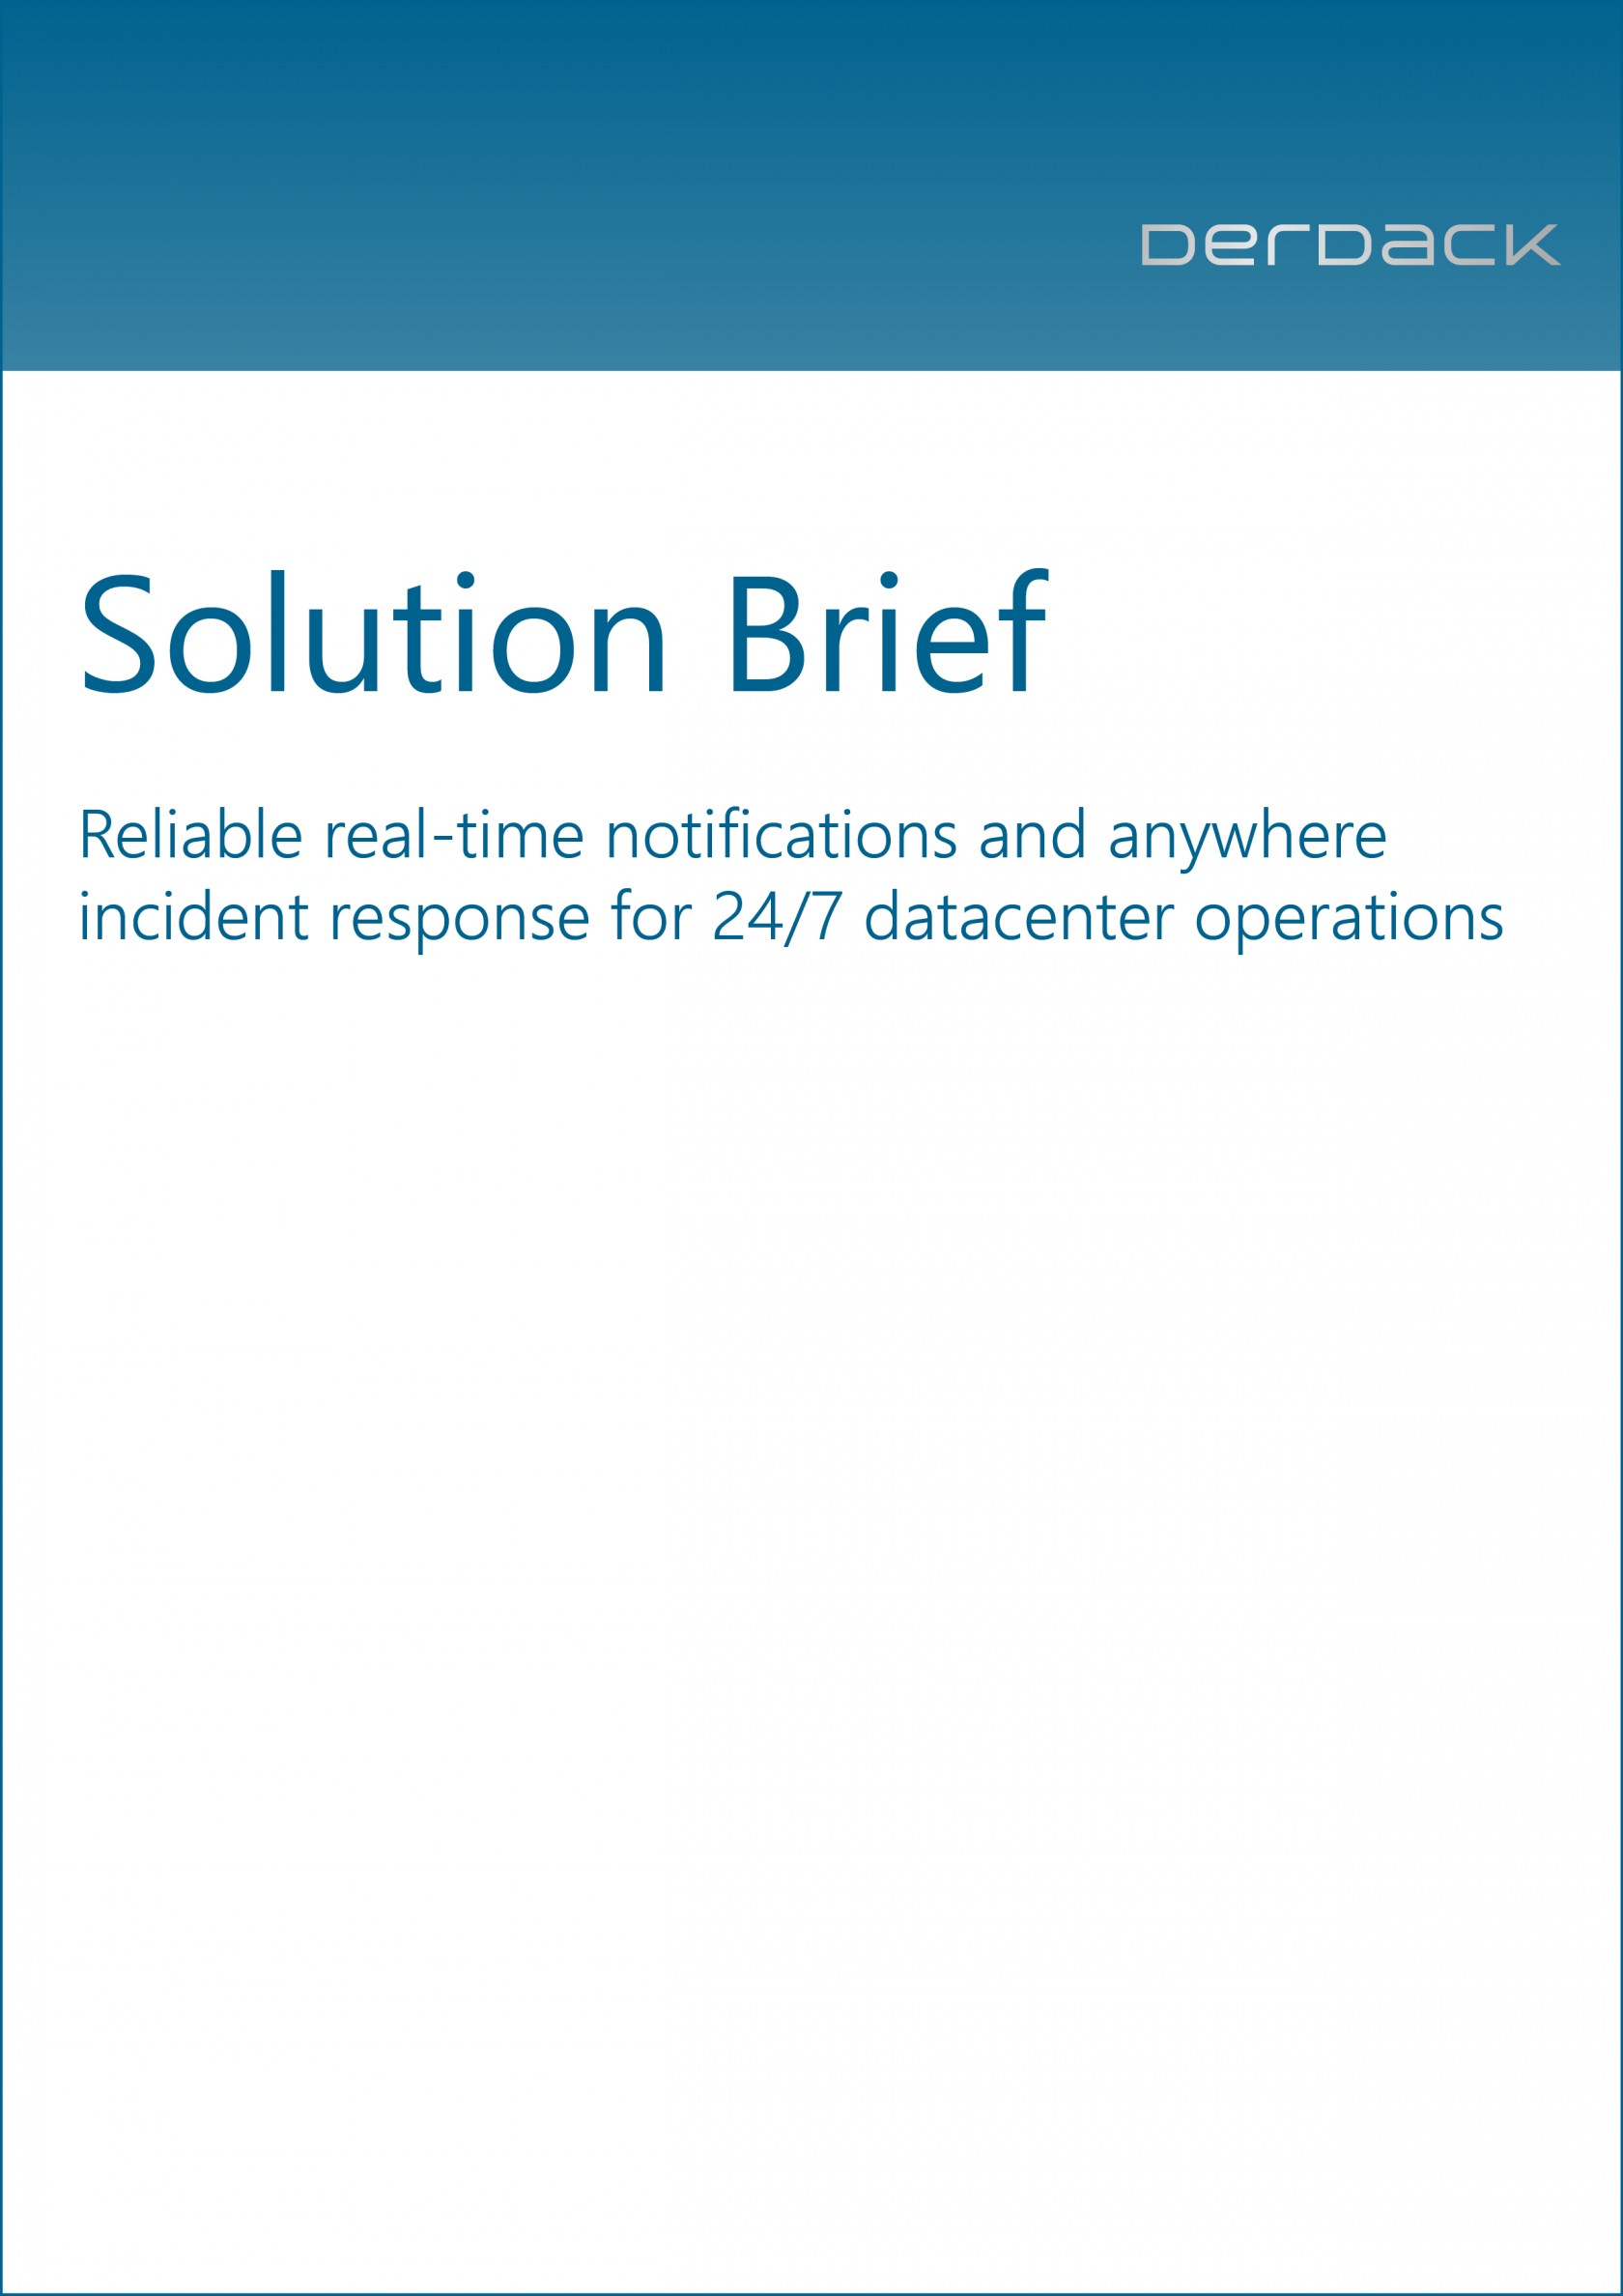 Titel_Solution_Brief_0